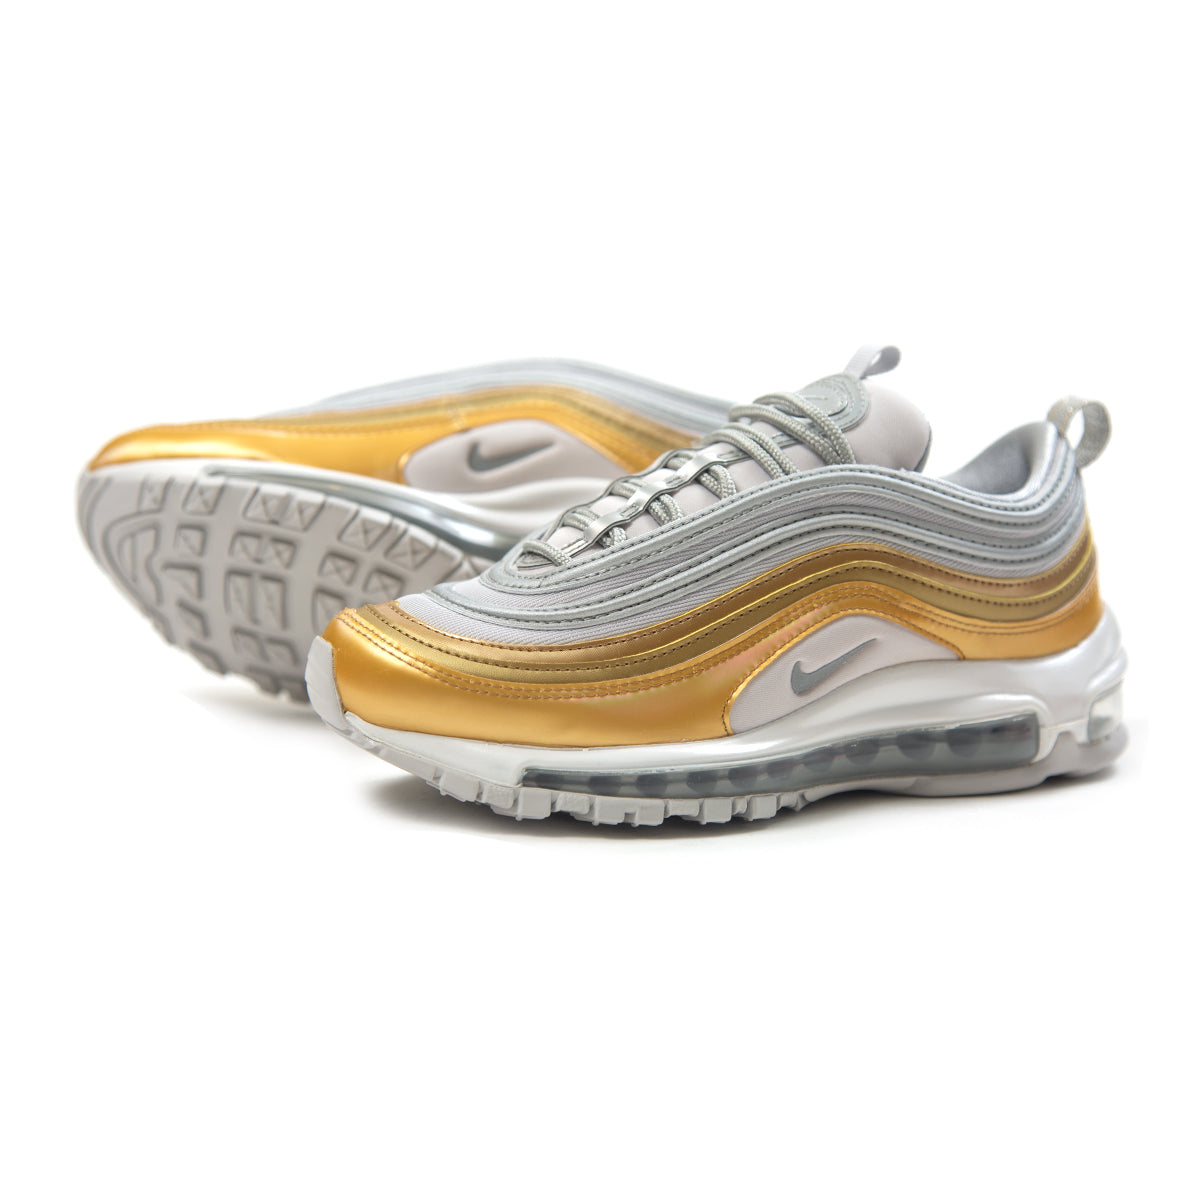 408f0dd6581cd Nike Women's Air Max 97 Special Edition (Vast Grey/Metallic Silver/Metallic  Gold)